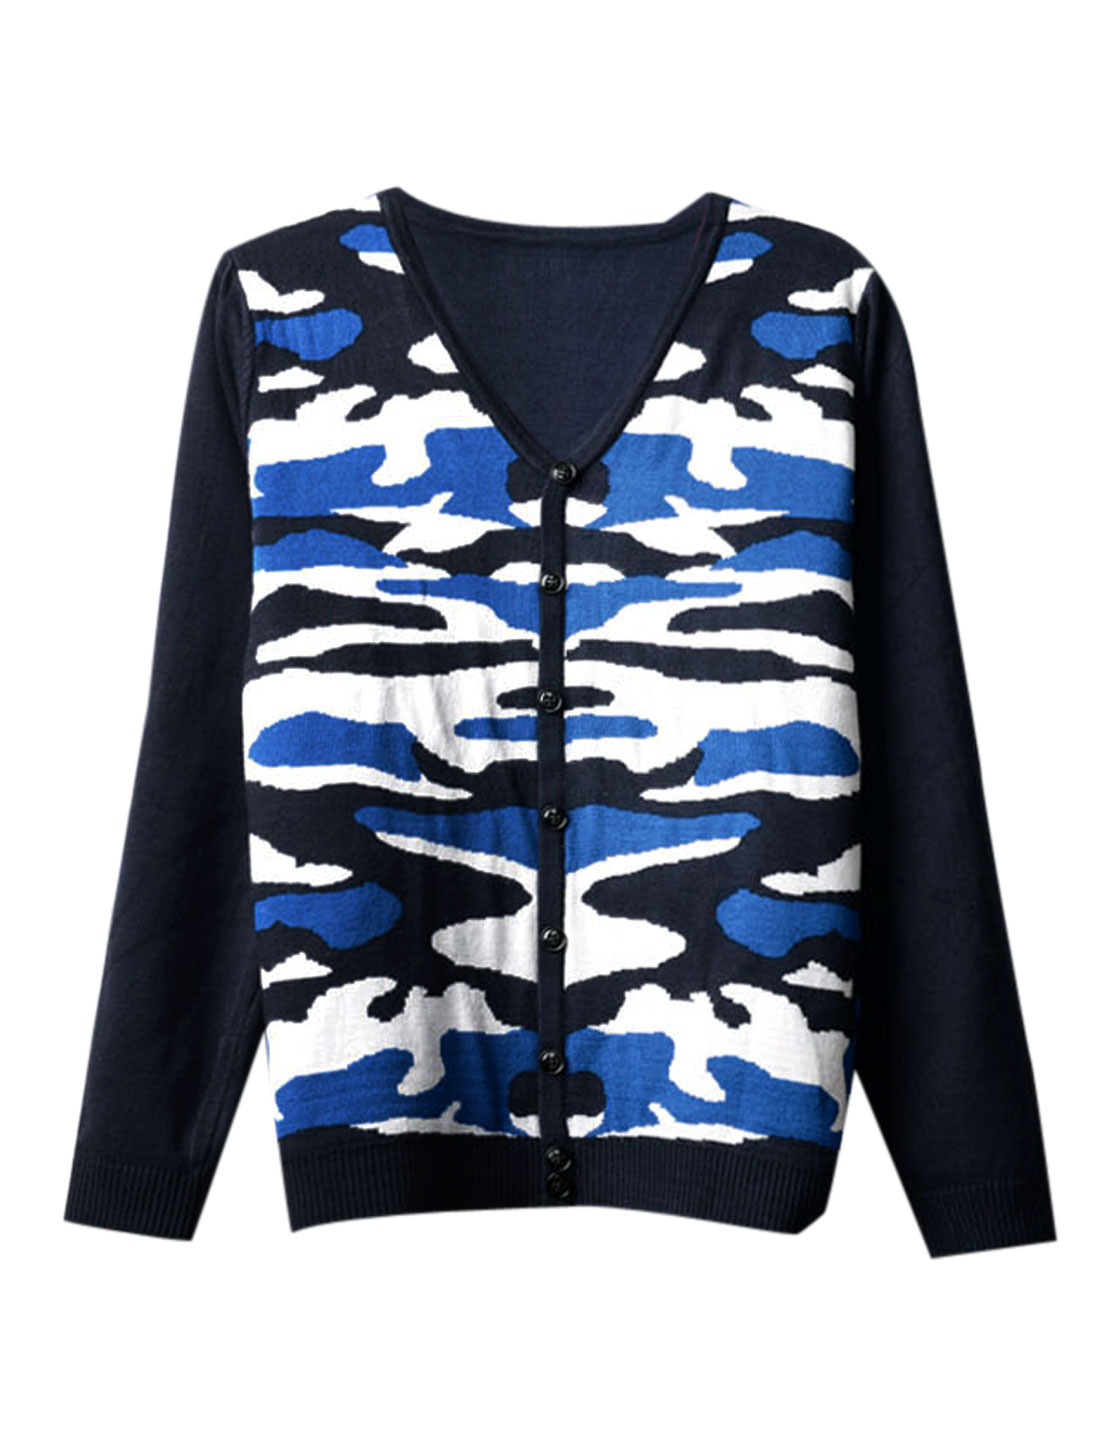 Men Long Sleeves Contrast Camo Print Stylish Cardigan Blue Navy Blue S